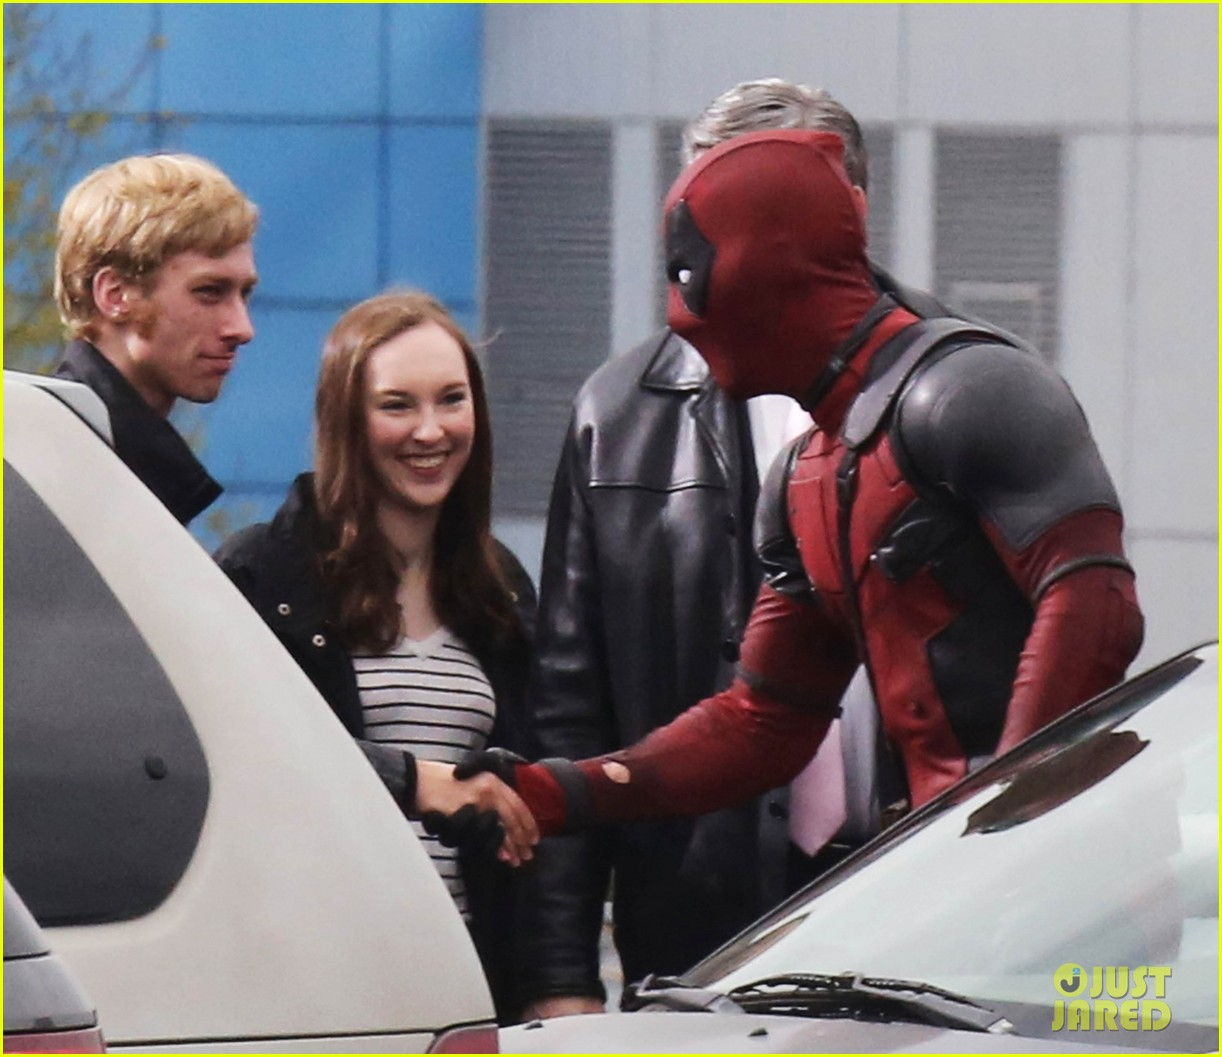 http://cdn01.cdn.justjared.com/wp-content/uploads/2015/04/reynolds-set/ryan-reynolds-films-some-deadpool-scenes-15.jpg